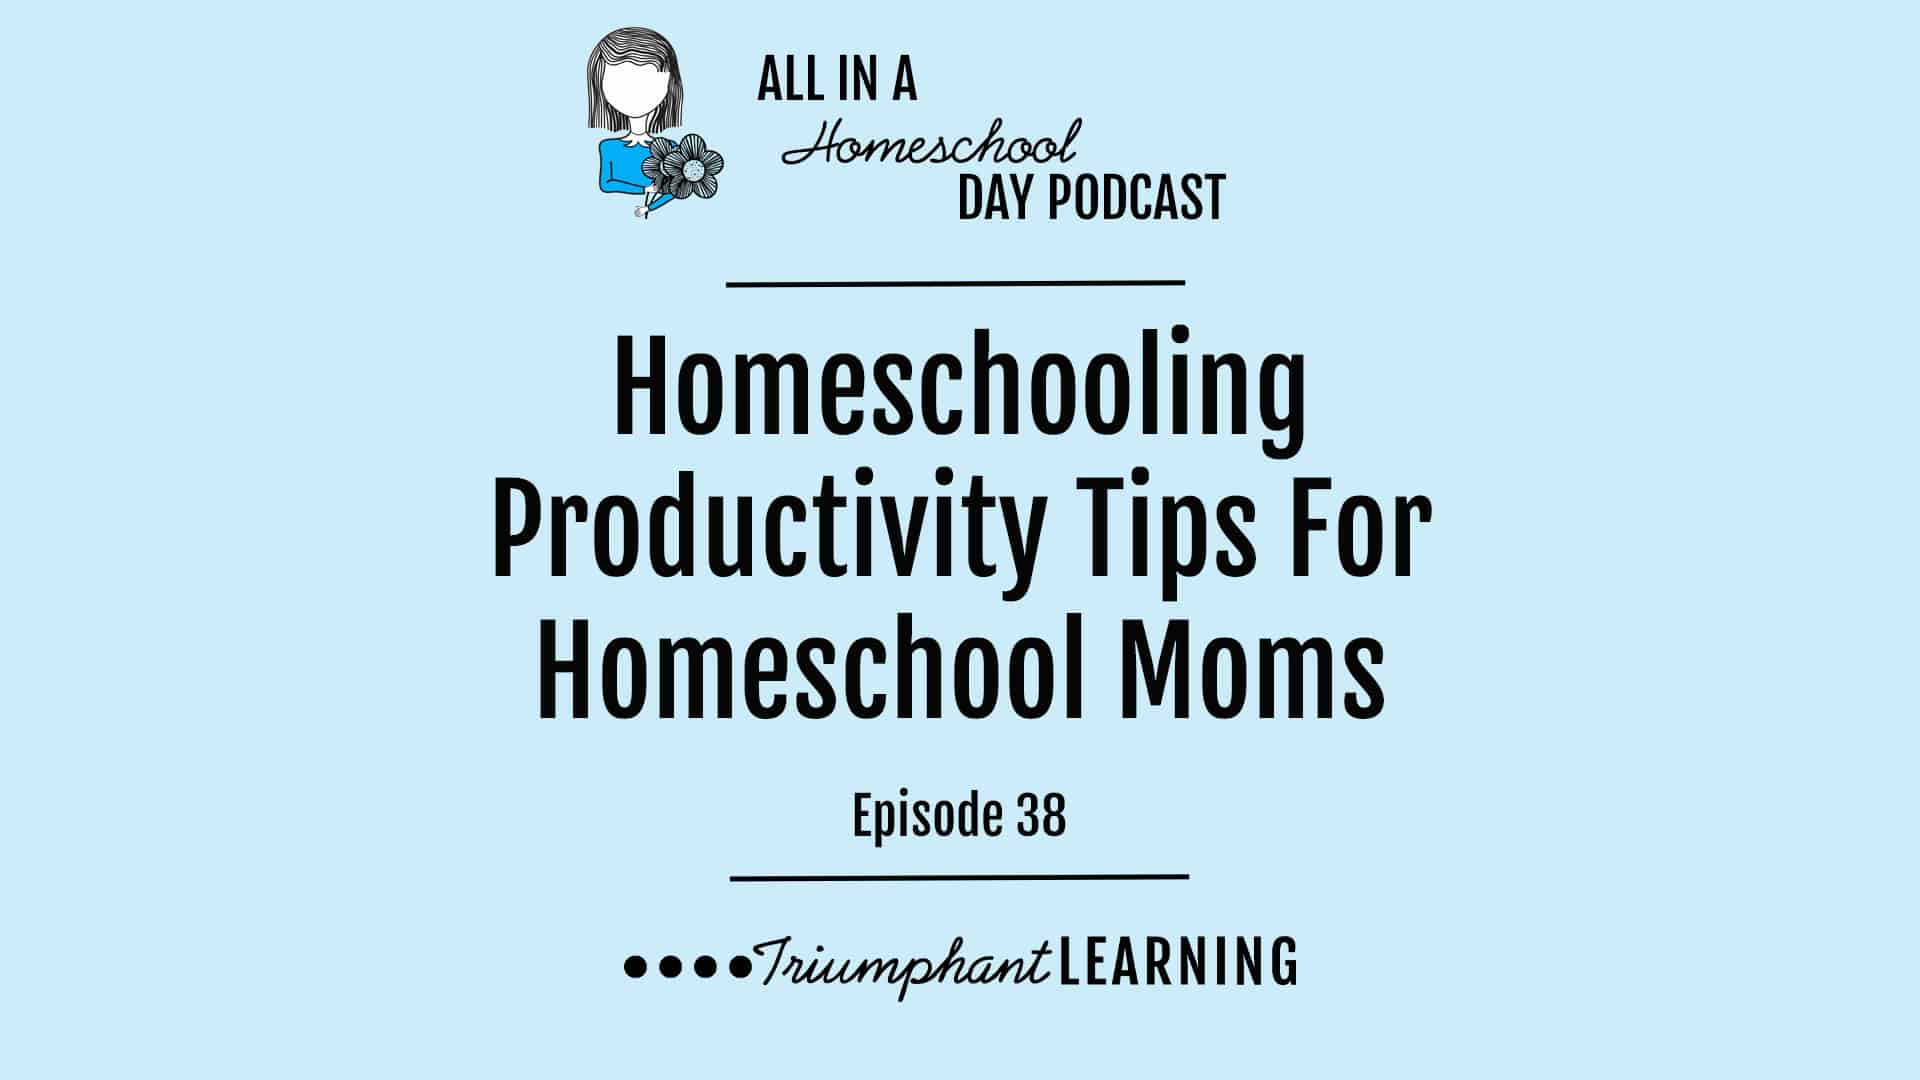 This is a culmination of everything we've talked about thus far in the Getting It All Done series. We'll bring all of the pieces together of knowing your purpose, practicing self-care, eliminating, automating, and delegating to identify the biggest struggles in your homeschool and what small, incremental steps you can take to make improvements.